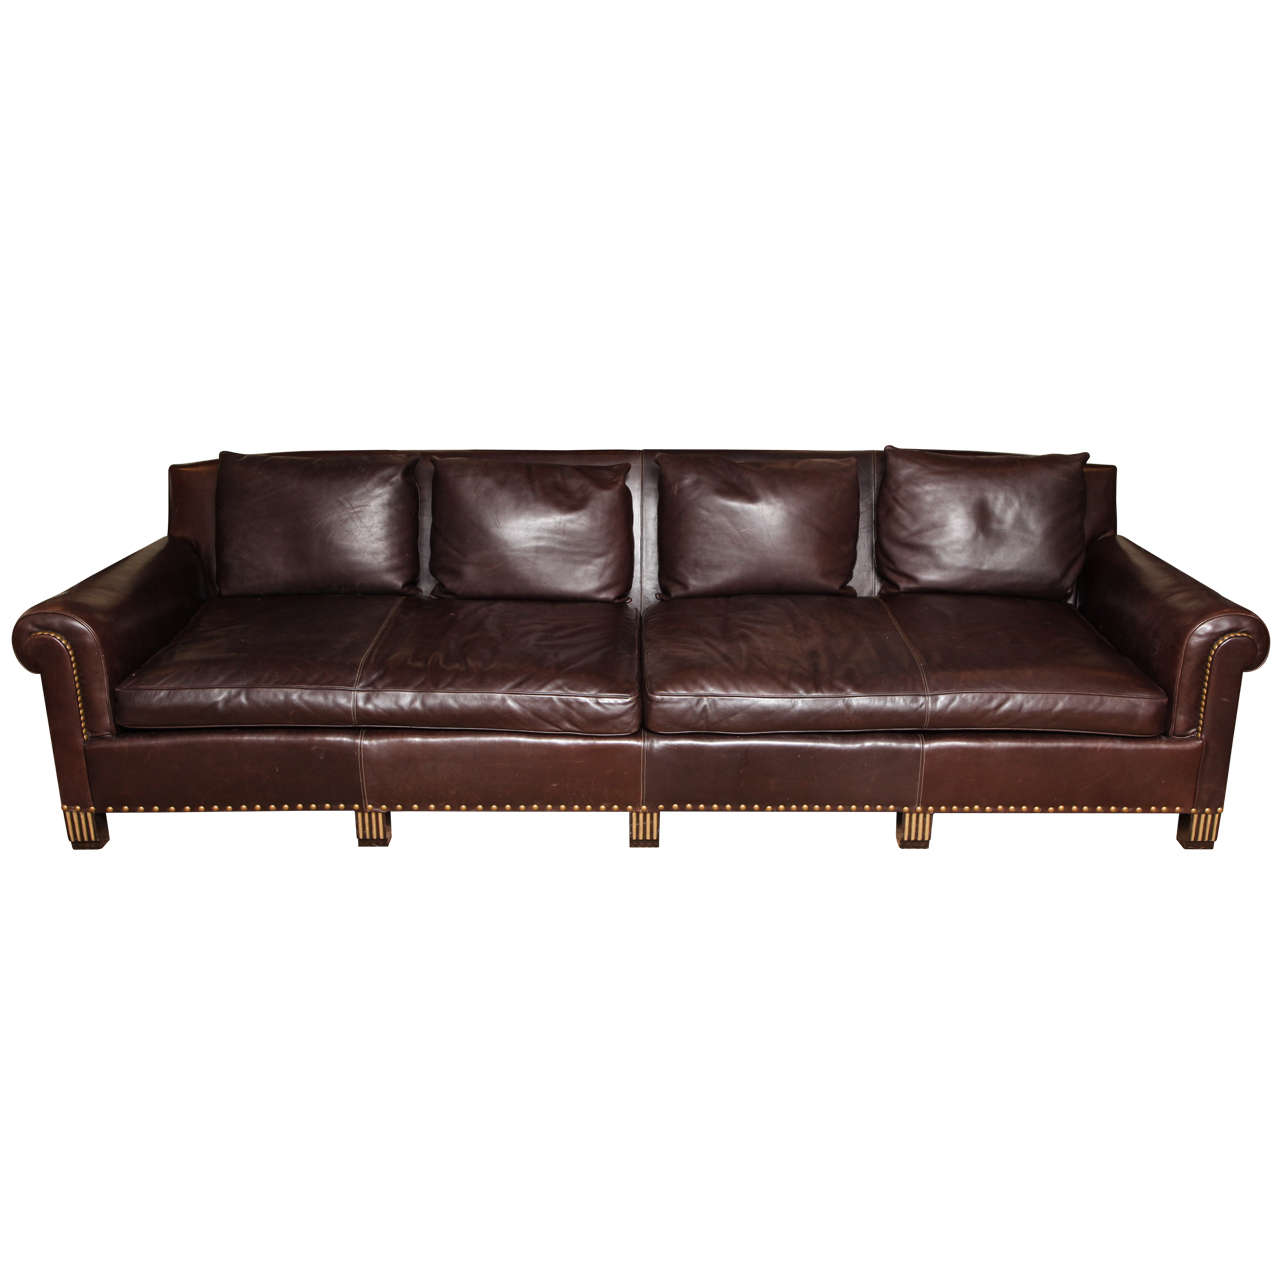 Reupholstery Cost Sofa Images